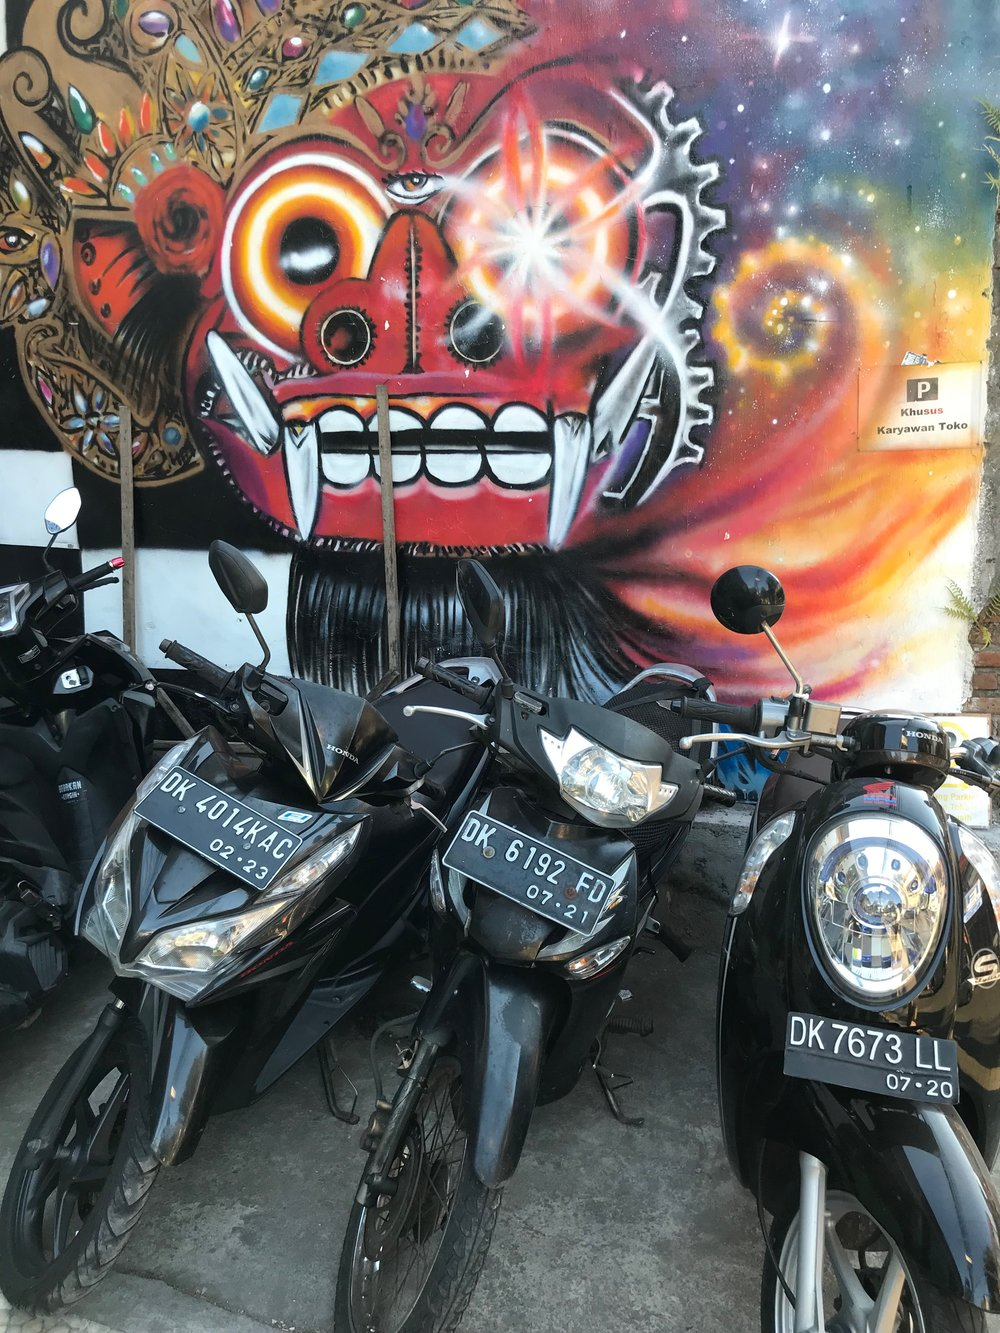 A popular figure on the island, Barong pops up everywhere, such as this street art in Ubud